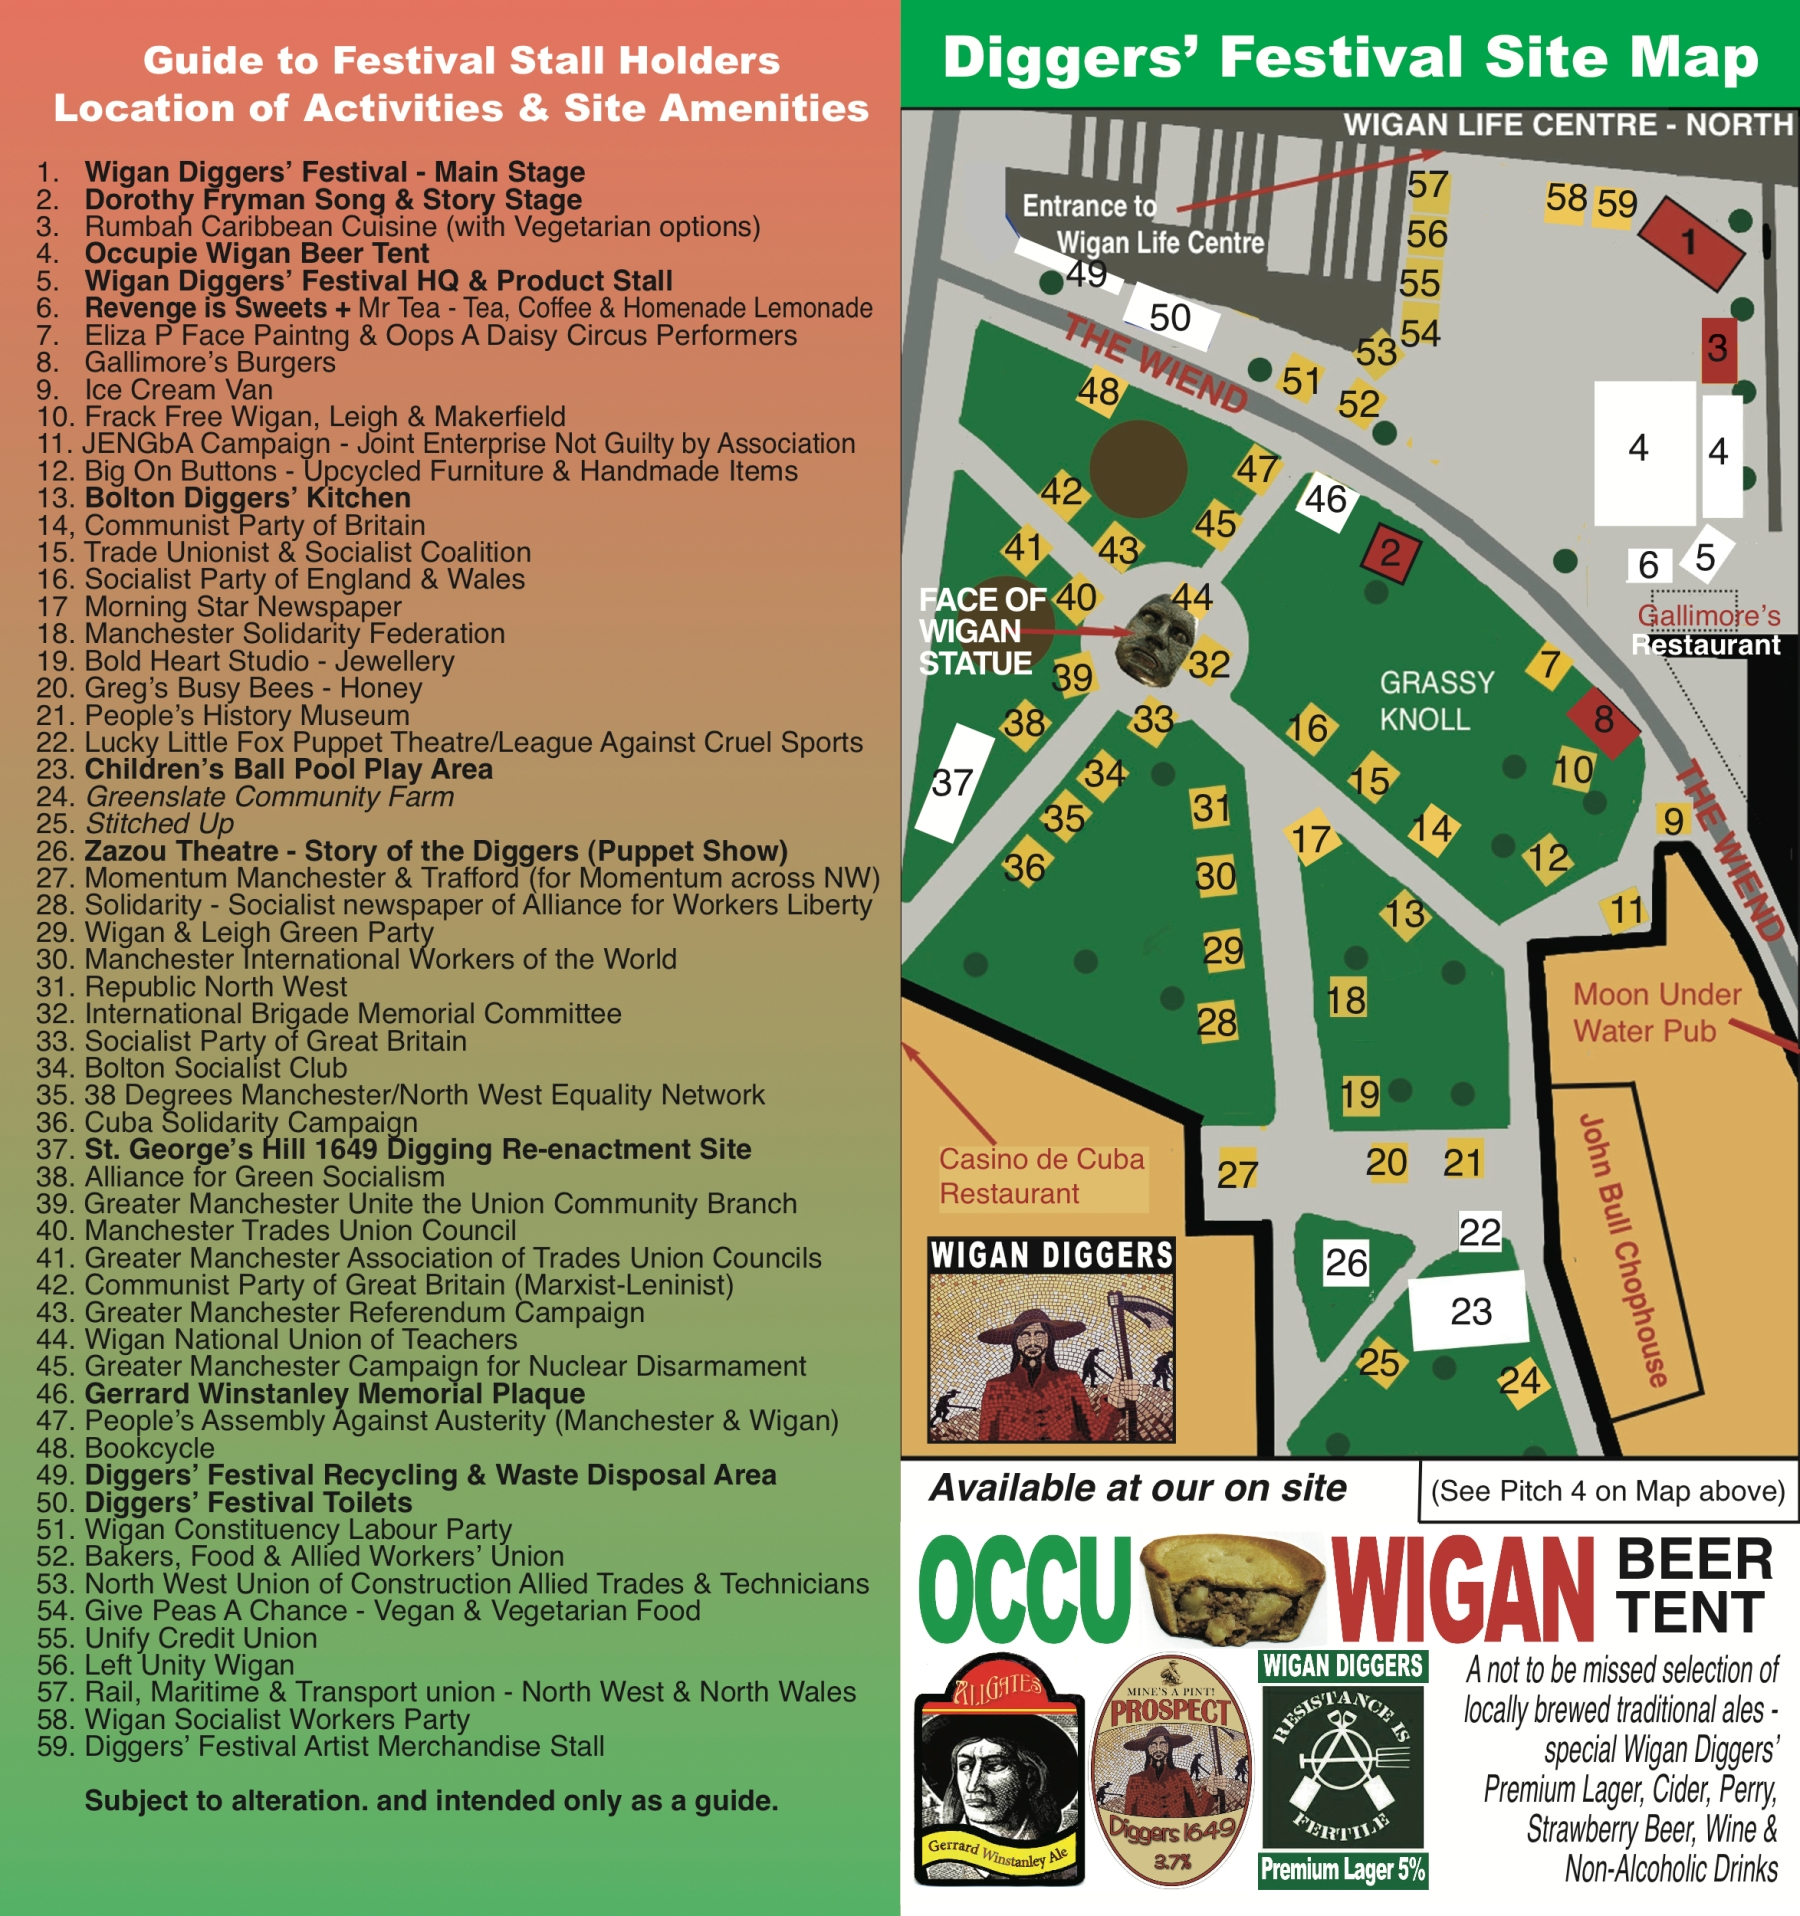 Site Map Example In Word: 6th Wigan Diggers' Festival